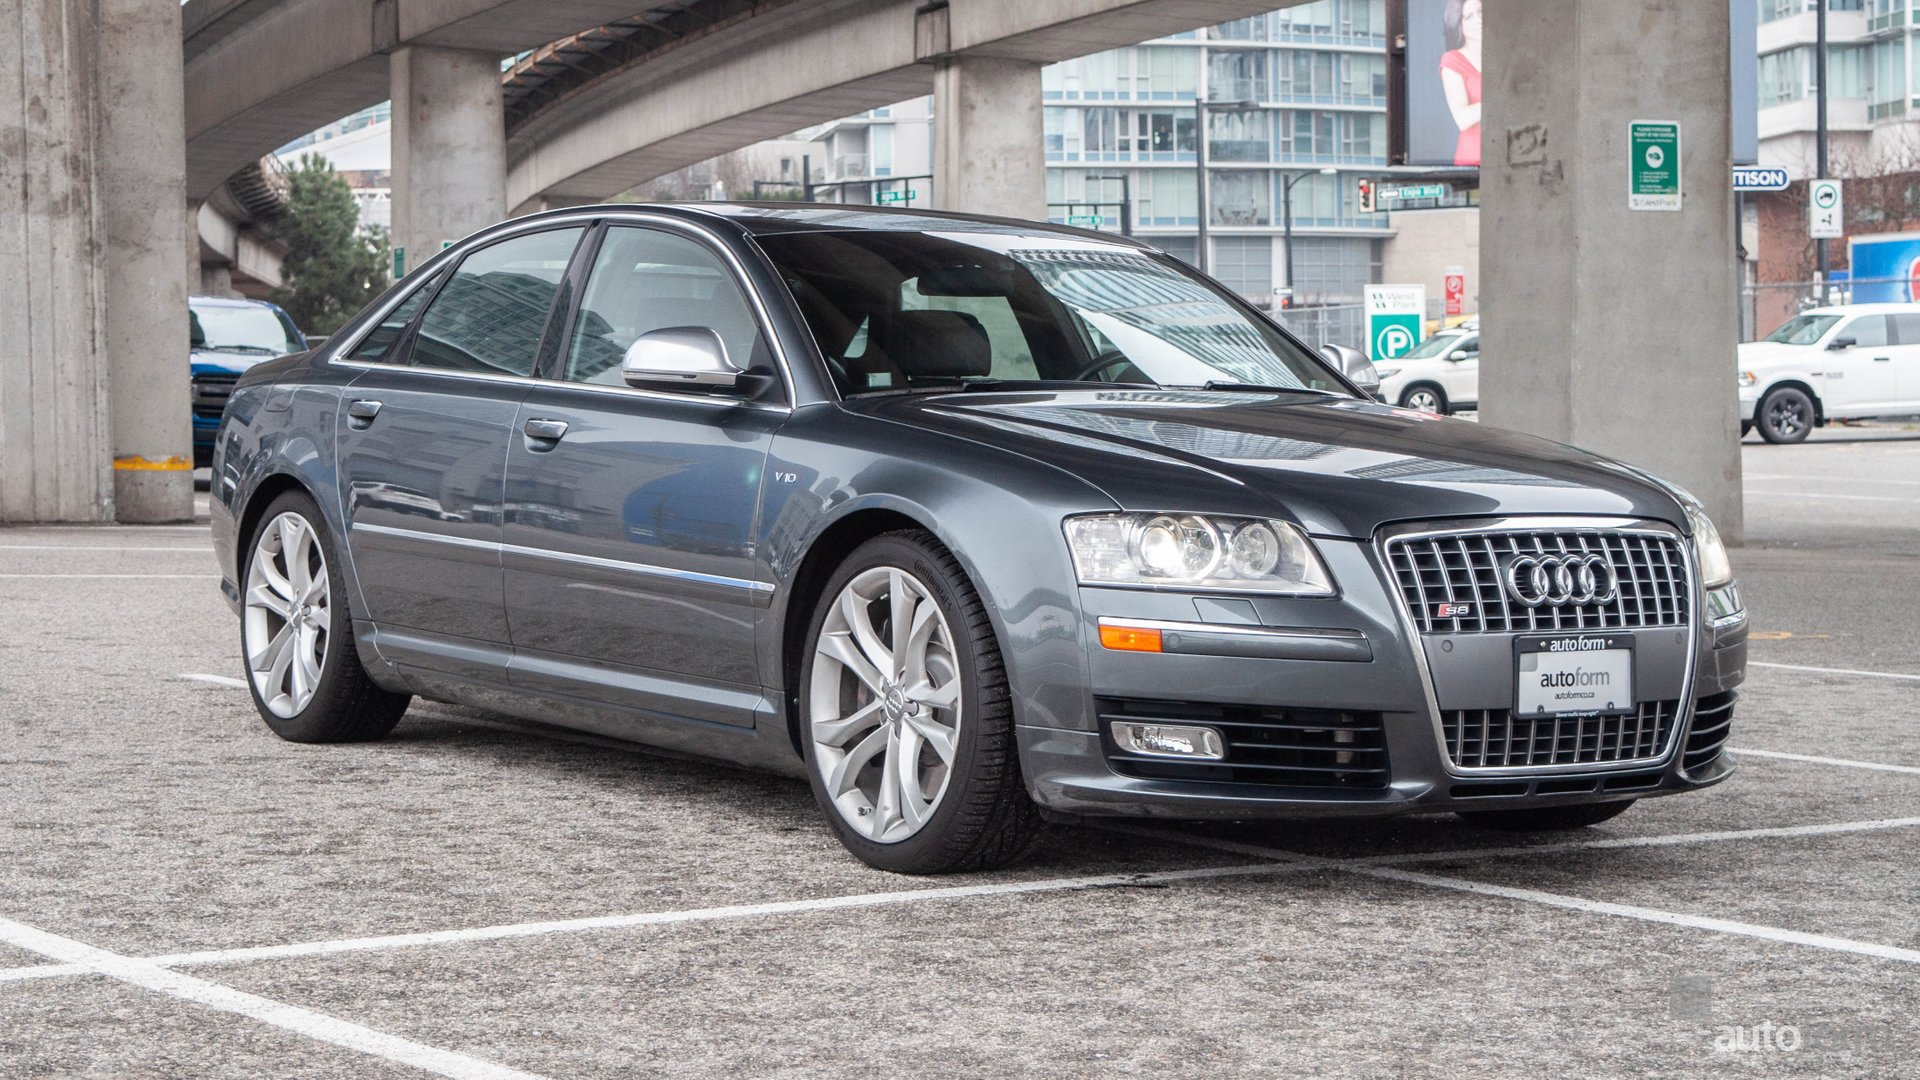 2009 audi s8 4dr sdn